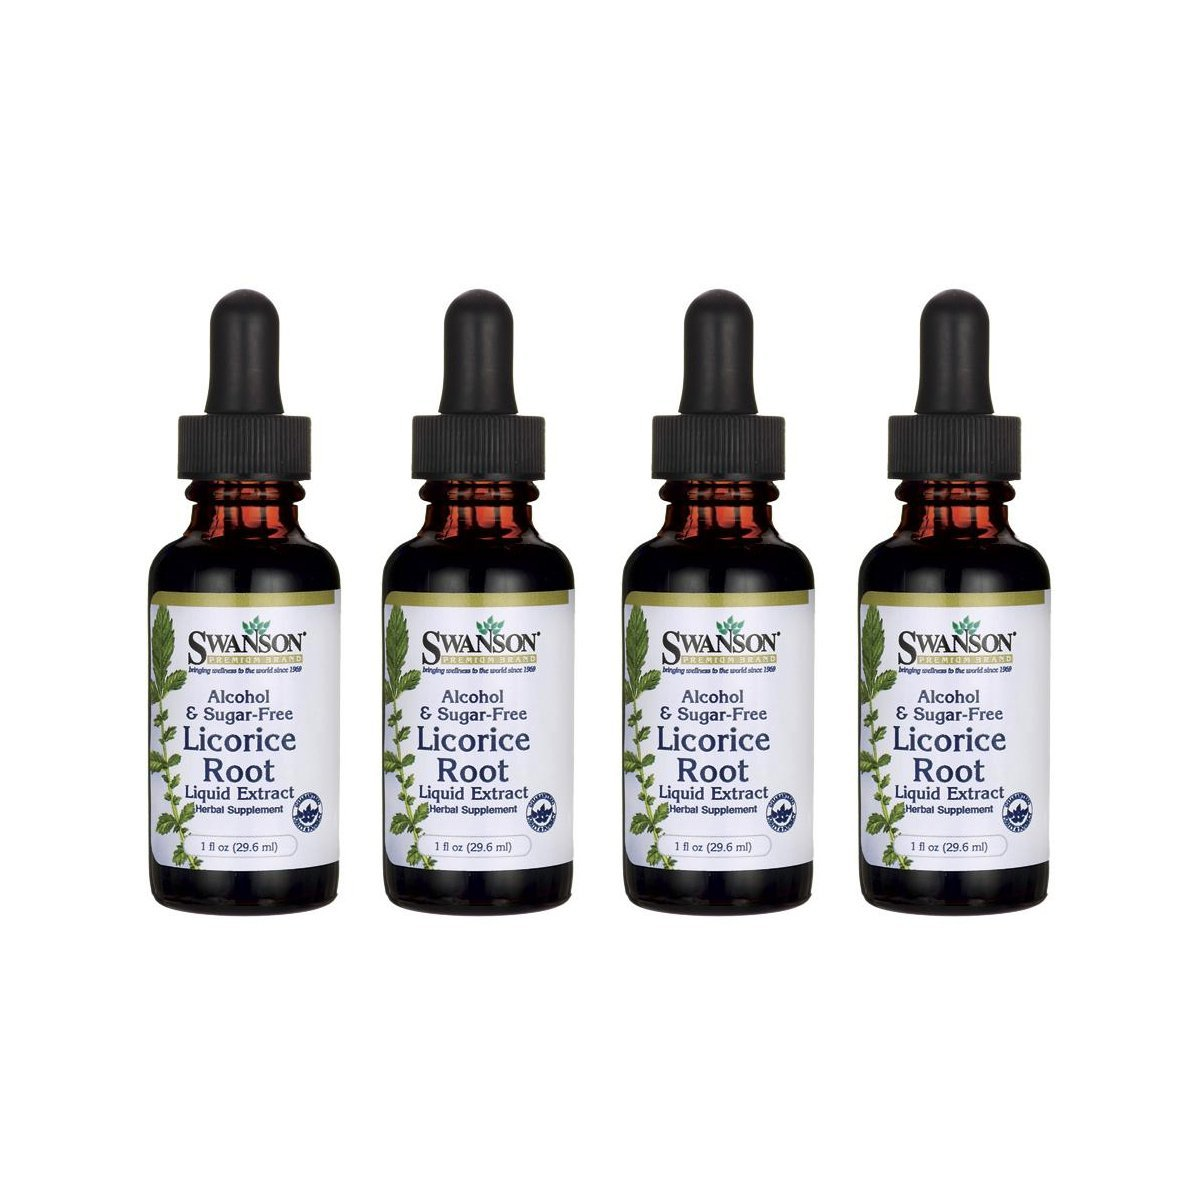 Swanson Licorice Root Liquid Extract (Alcohol and Sugar-Free) 1 fl oz Liquid 4 Pack